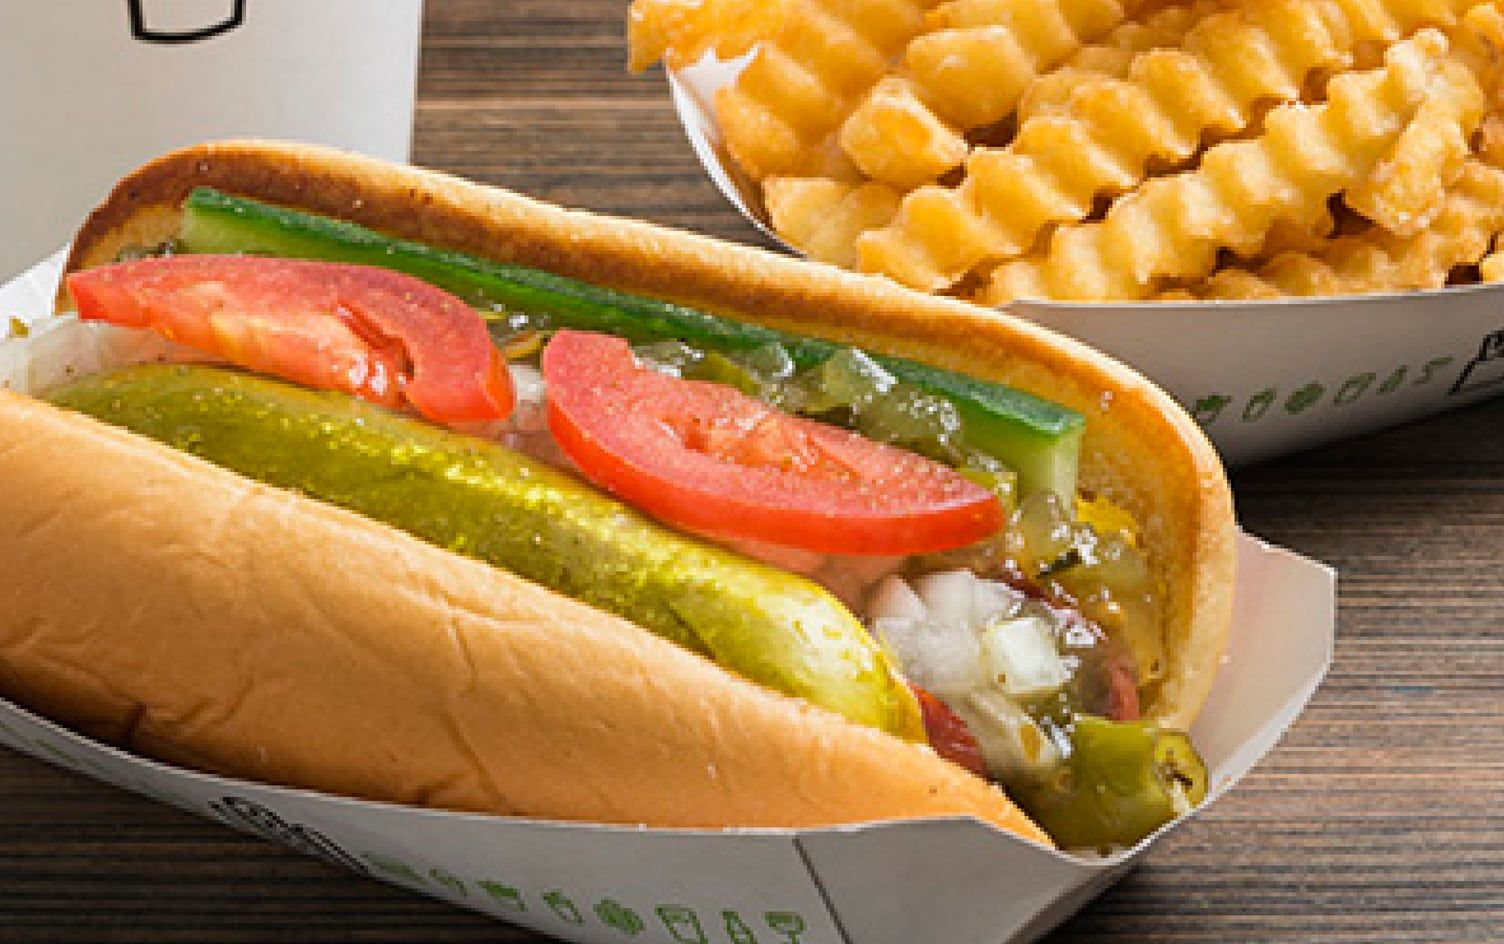 10 Of The Healthiest Fast Food Dishes You Can Order